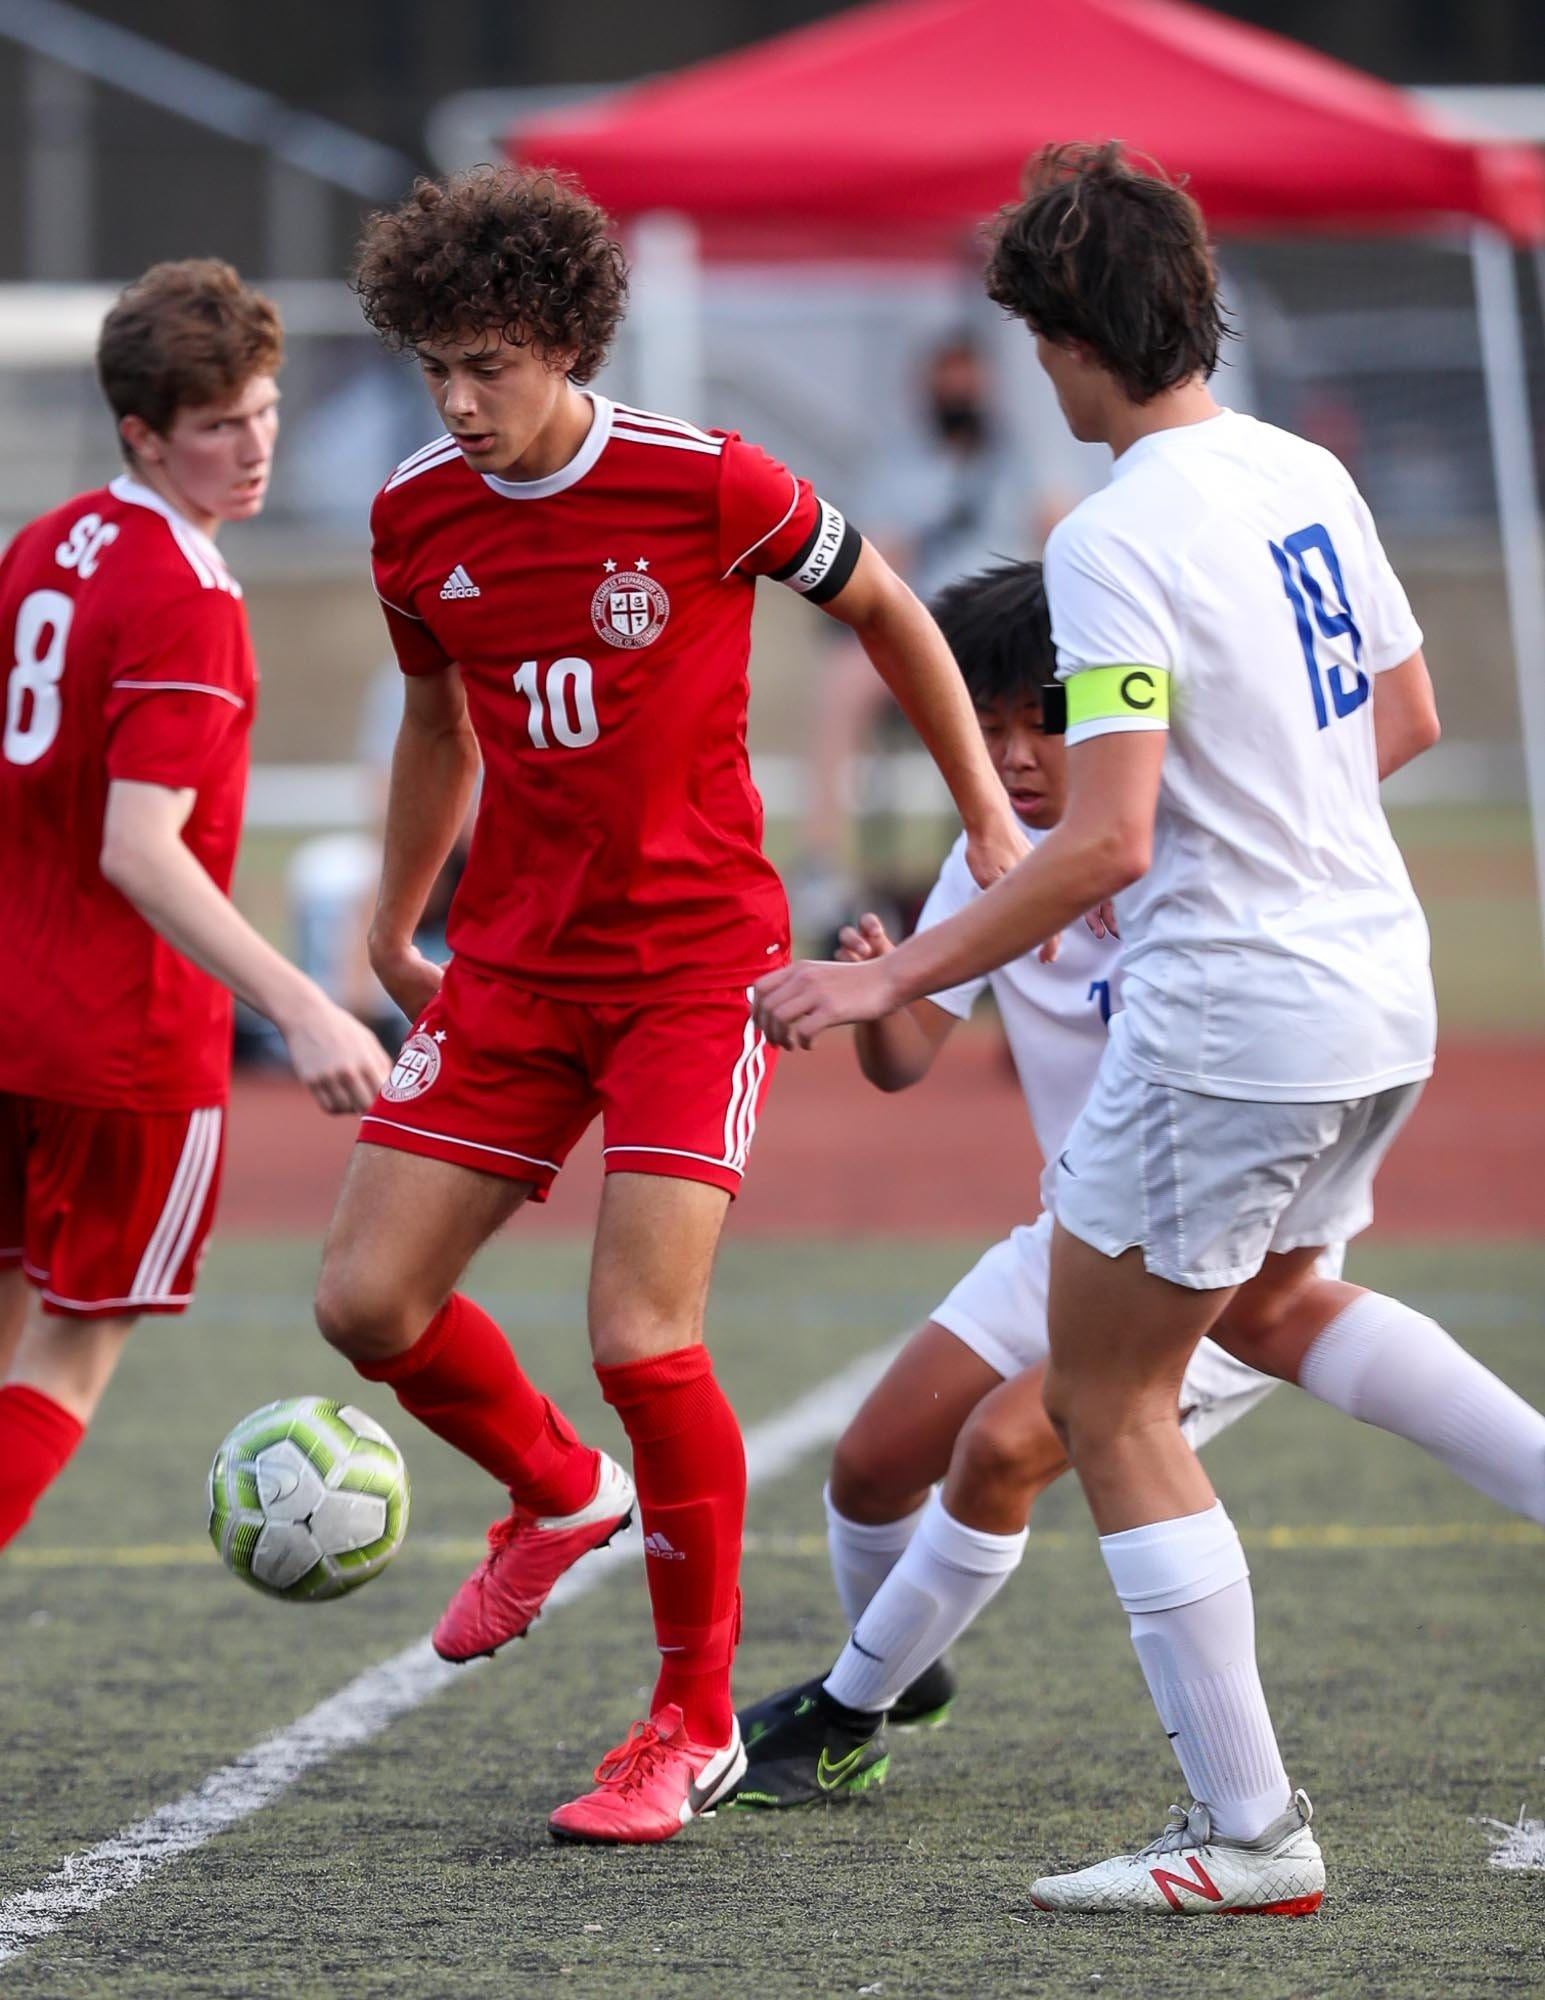 St. Charles player Gabe O'Reilly controls the ball while being defended by Hilliard Davidson's Sam Holden at the St. Charles Preparatory School in Bexley, Ohio on September 10, 2020. The host Cardinals blanked the visiting Wildcats 2-0.